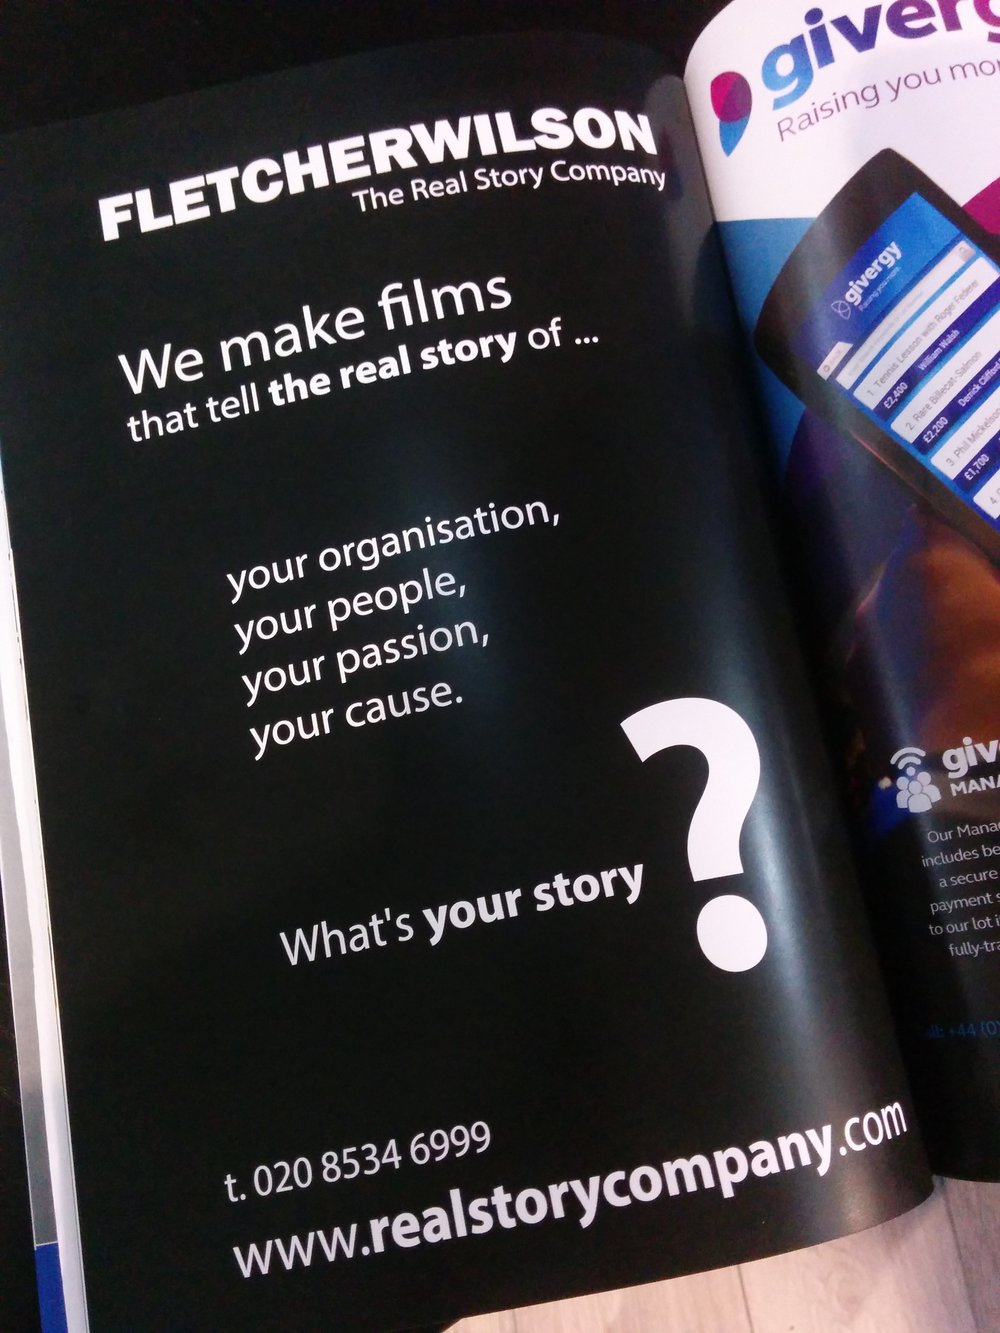 FLETCHERWILSON ad in the Charity Tech conference programme.